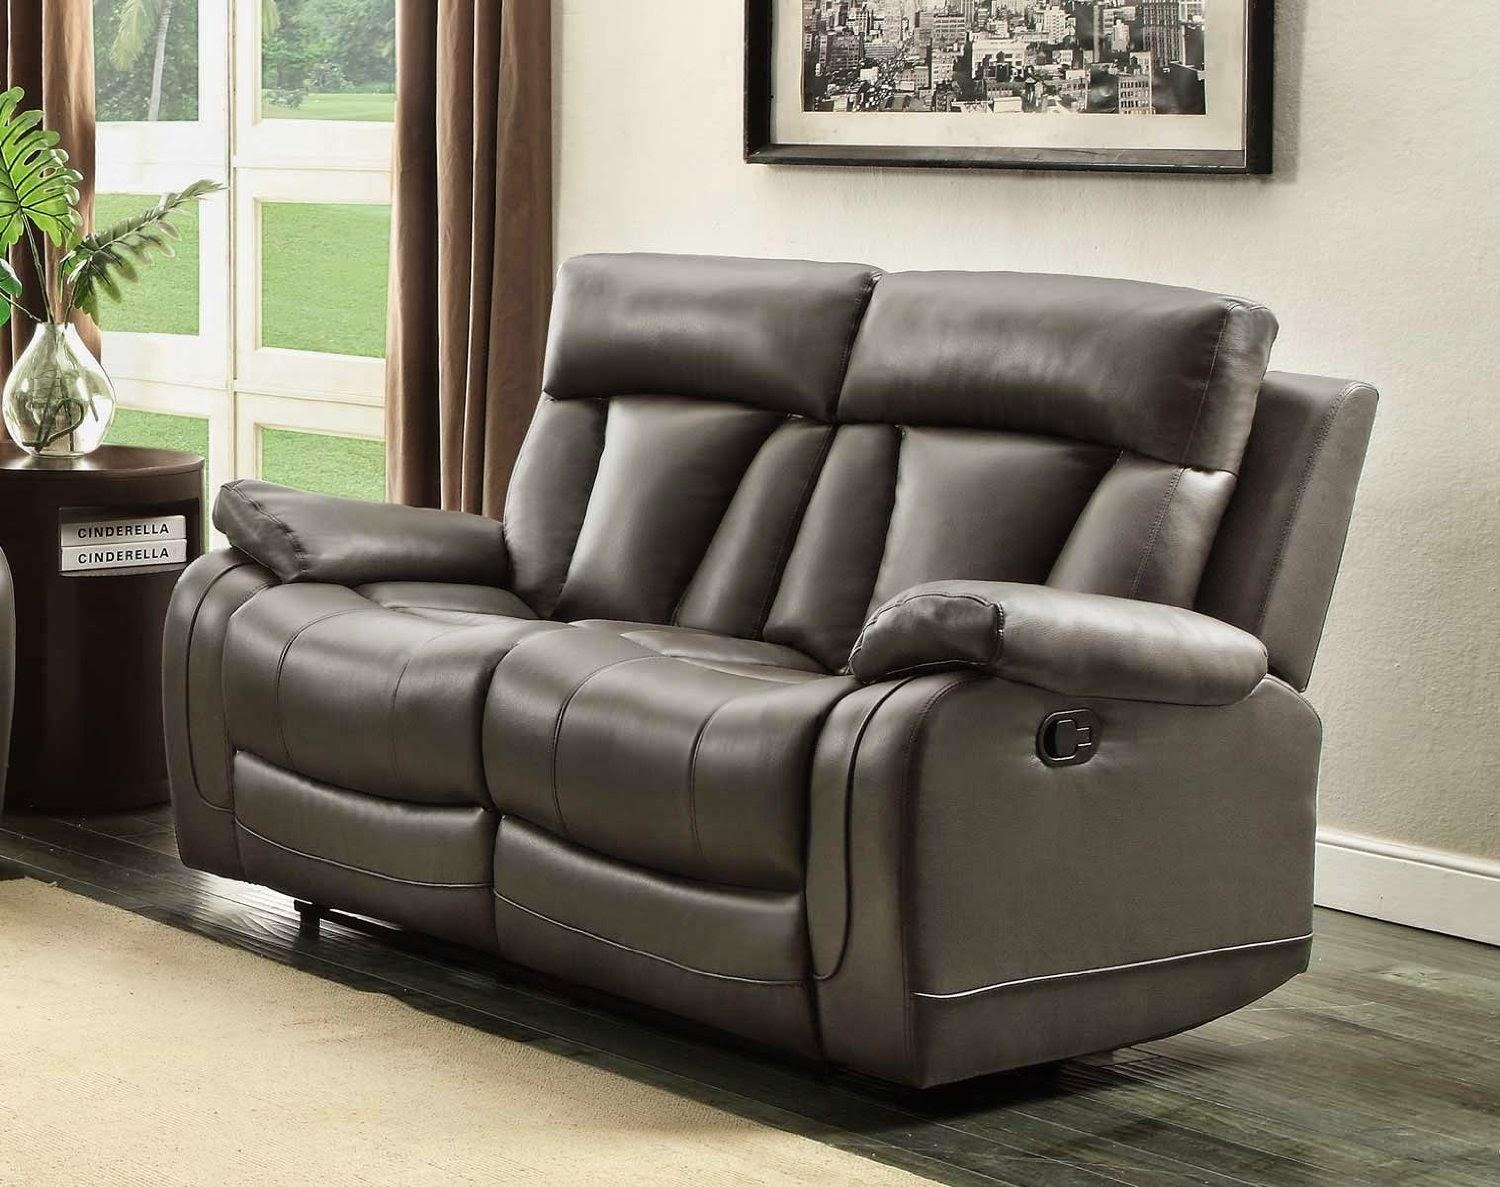 Best Reclining Sofa For The Money: Vivaldi 2 Seater Reclining Within 2 Seater Recliner Leather Sofas (Image 5 of 20)